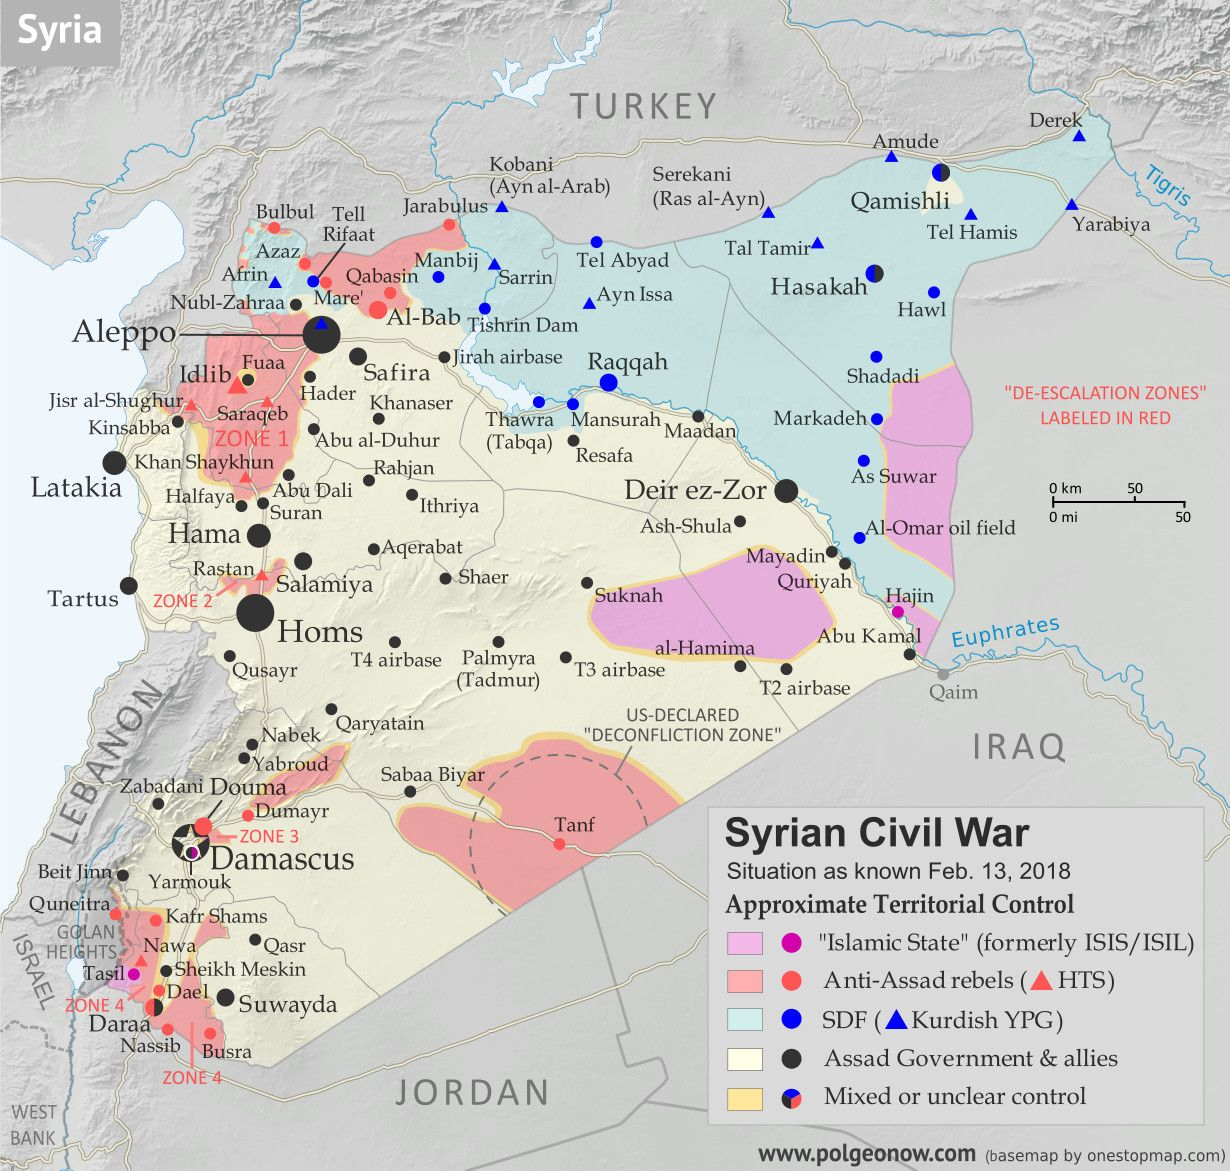 Political Geography Now: Syrian Civil War Map & Timeline - February ...